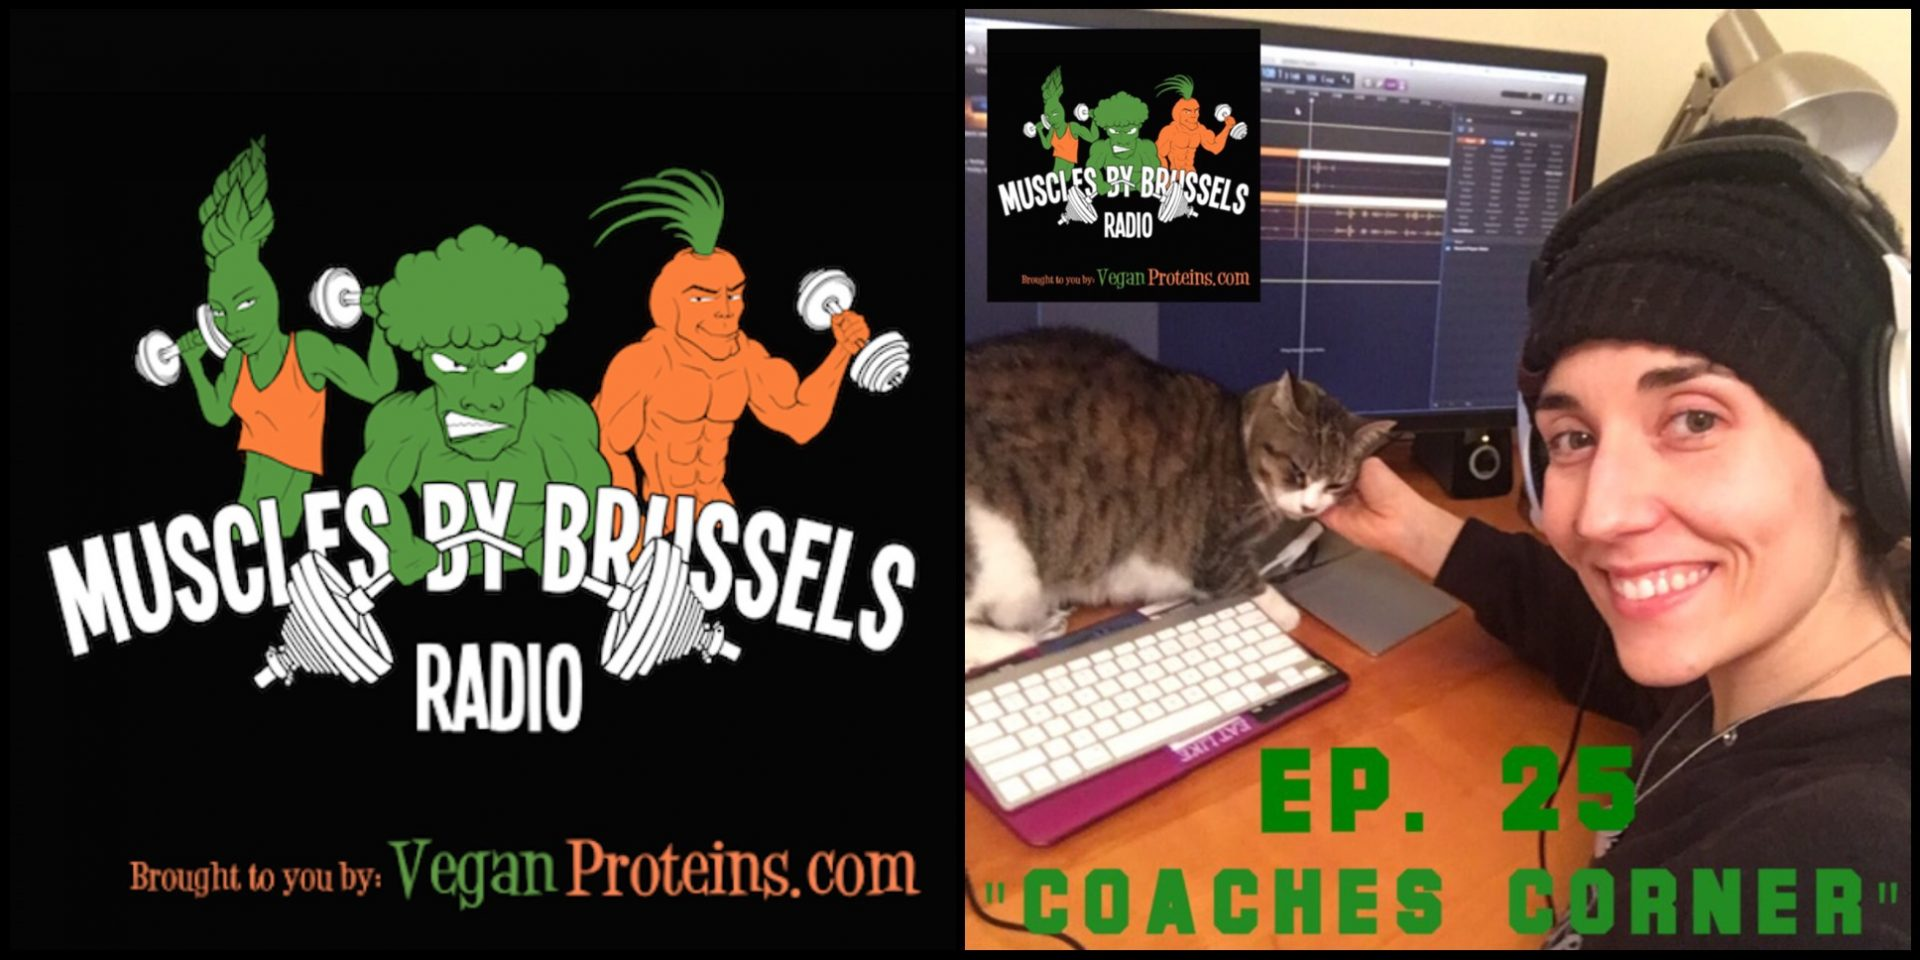 Muscles By Brussels Radio Ep 25 - Coaches Corner